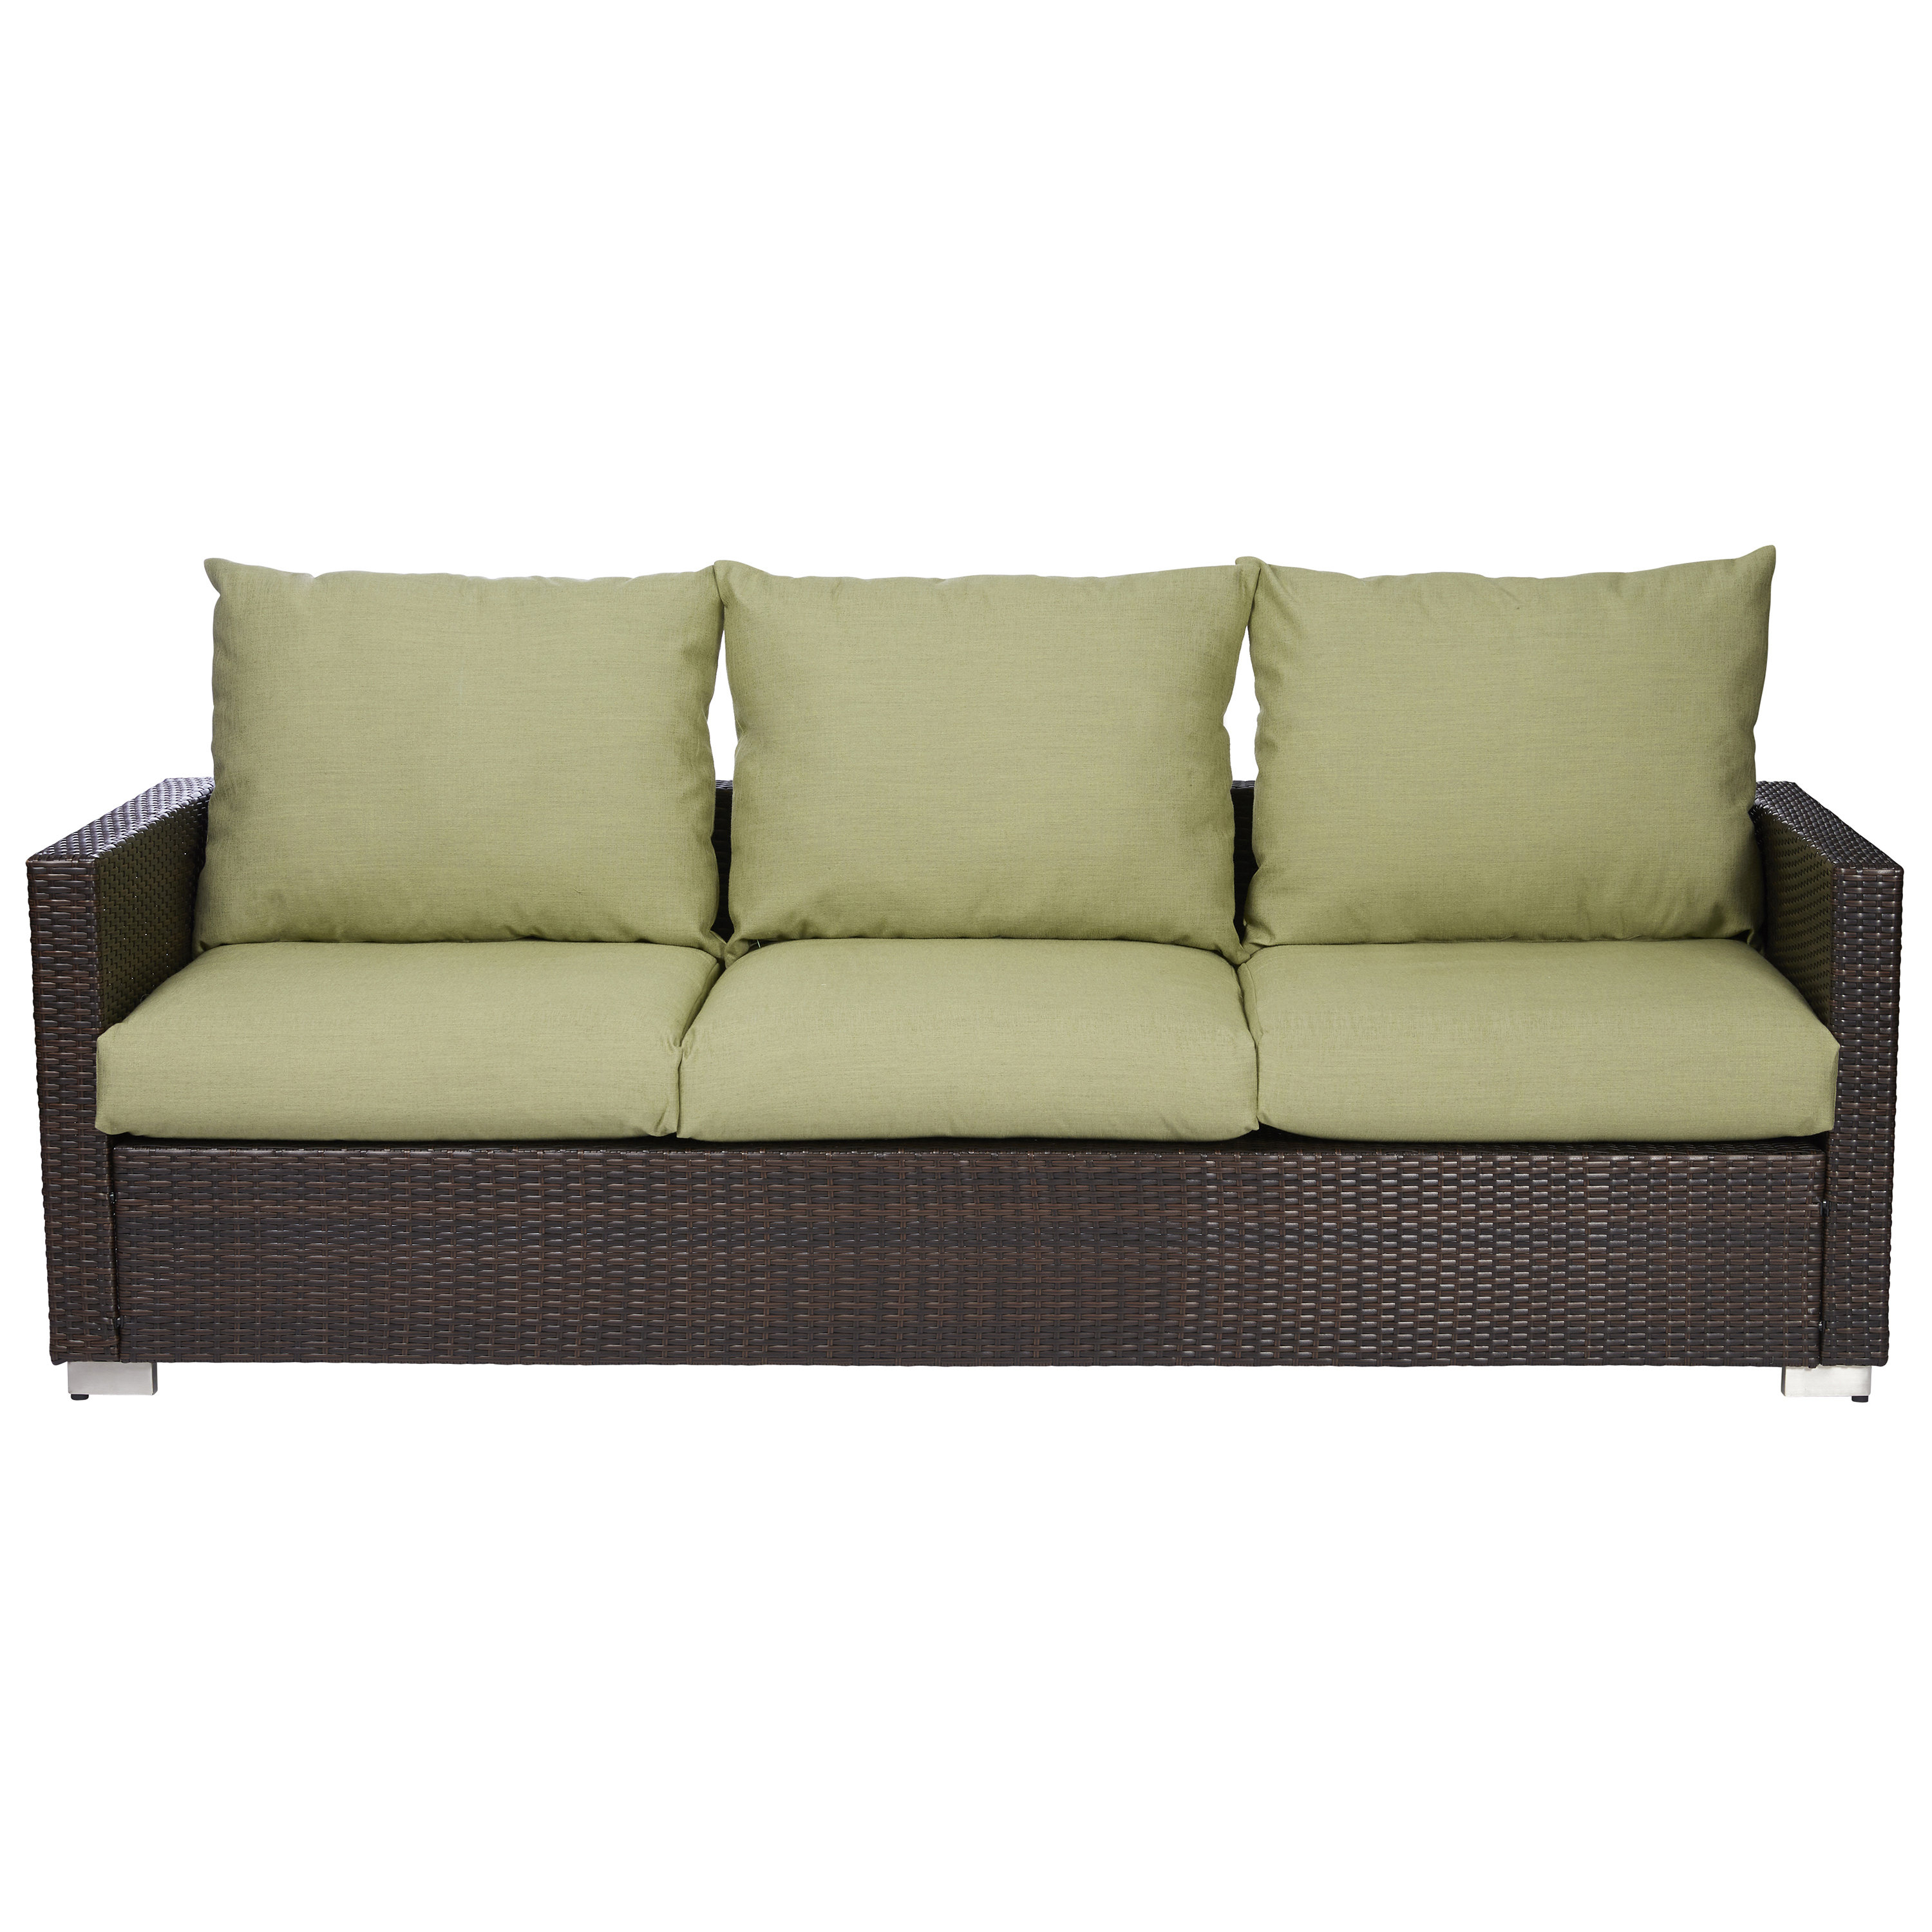 Mcmanis Patio Sofas With Cushion Inside Newest Mcmanis Patio Sofa With Cushion (View 11 of 20)